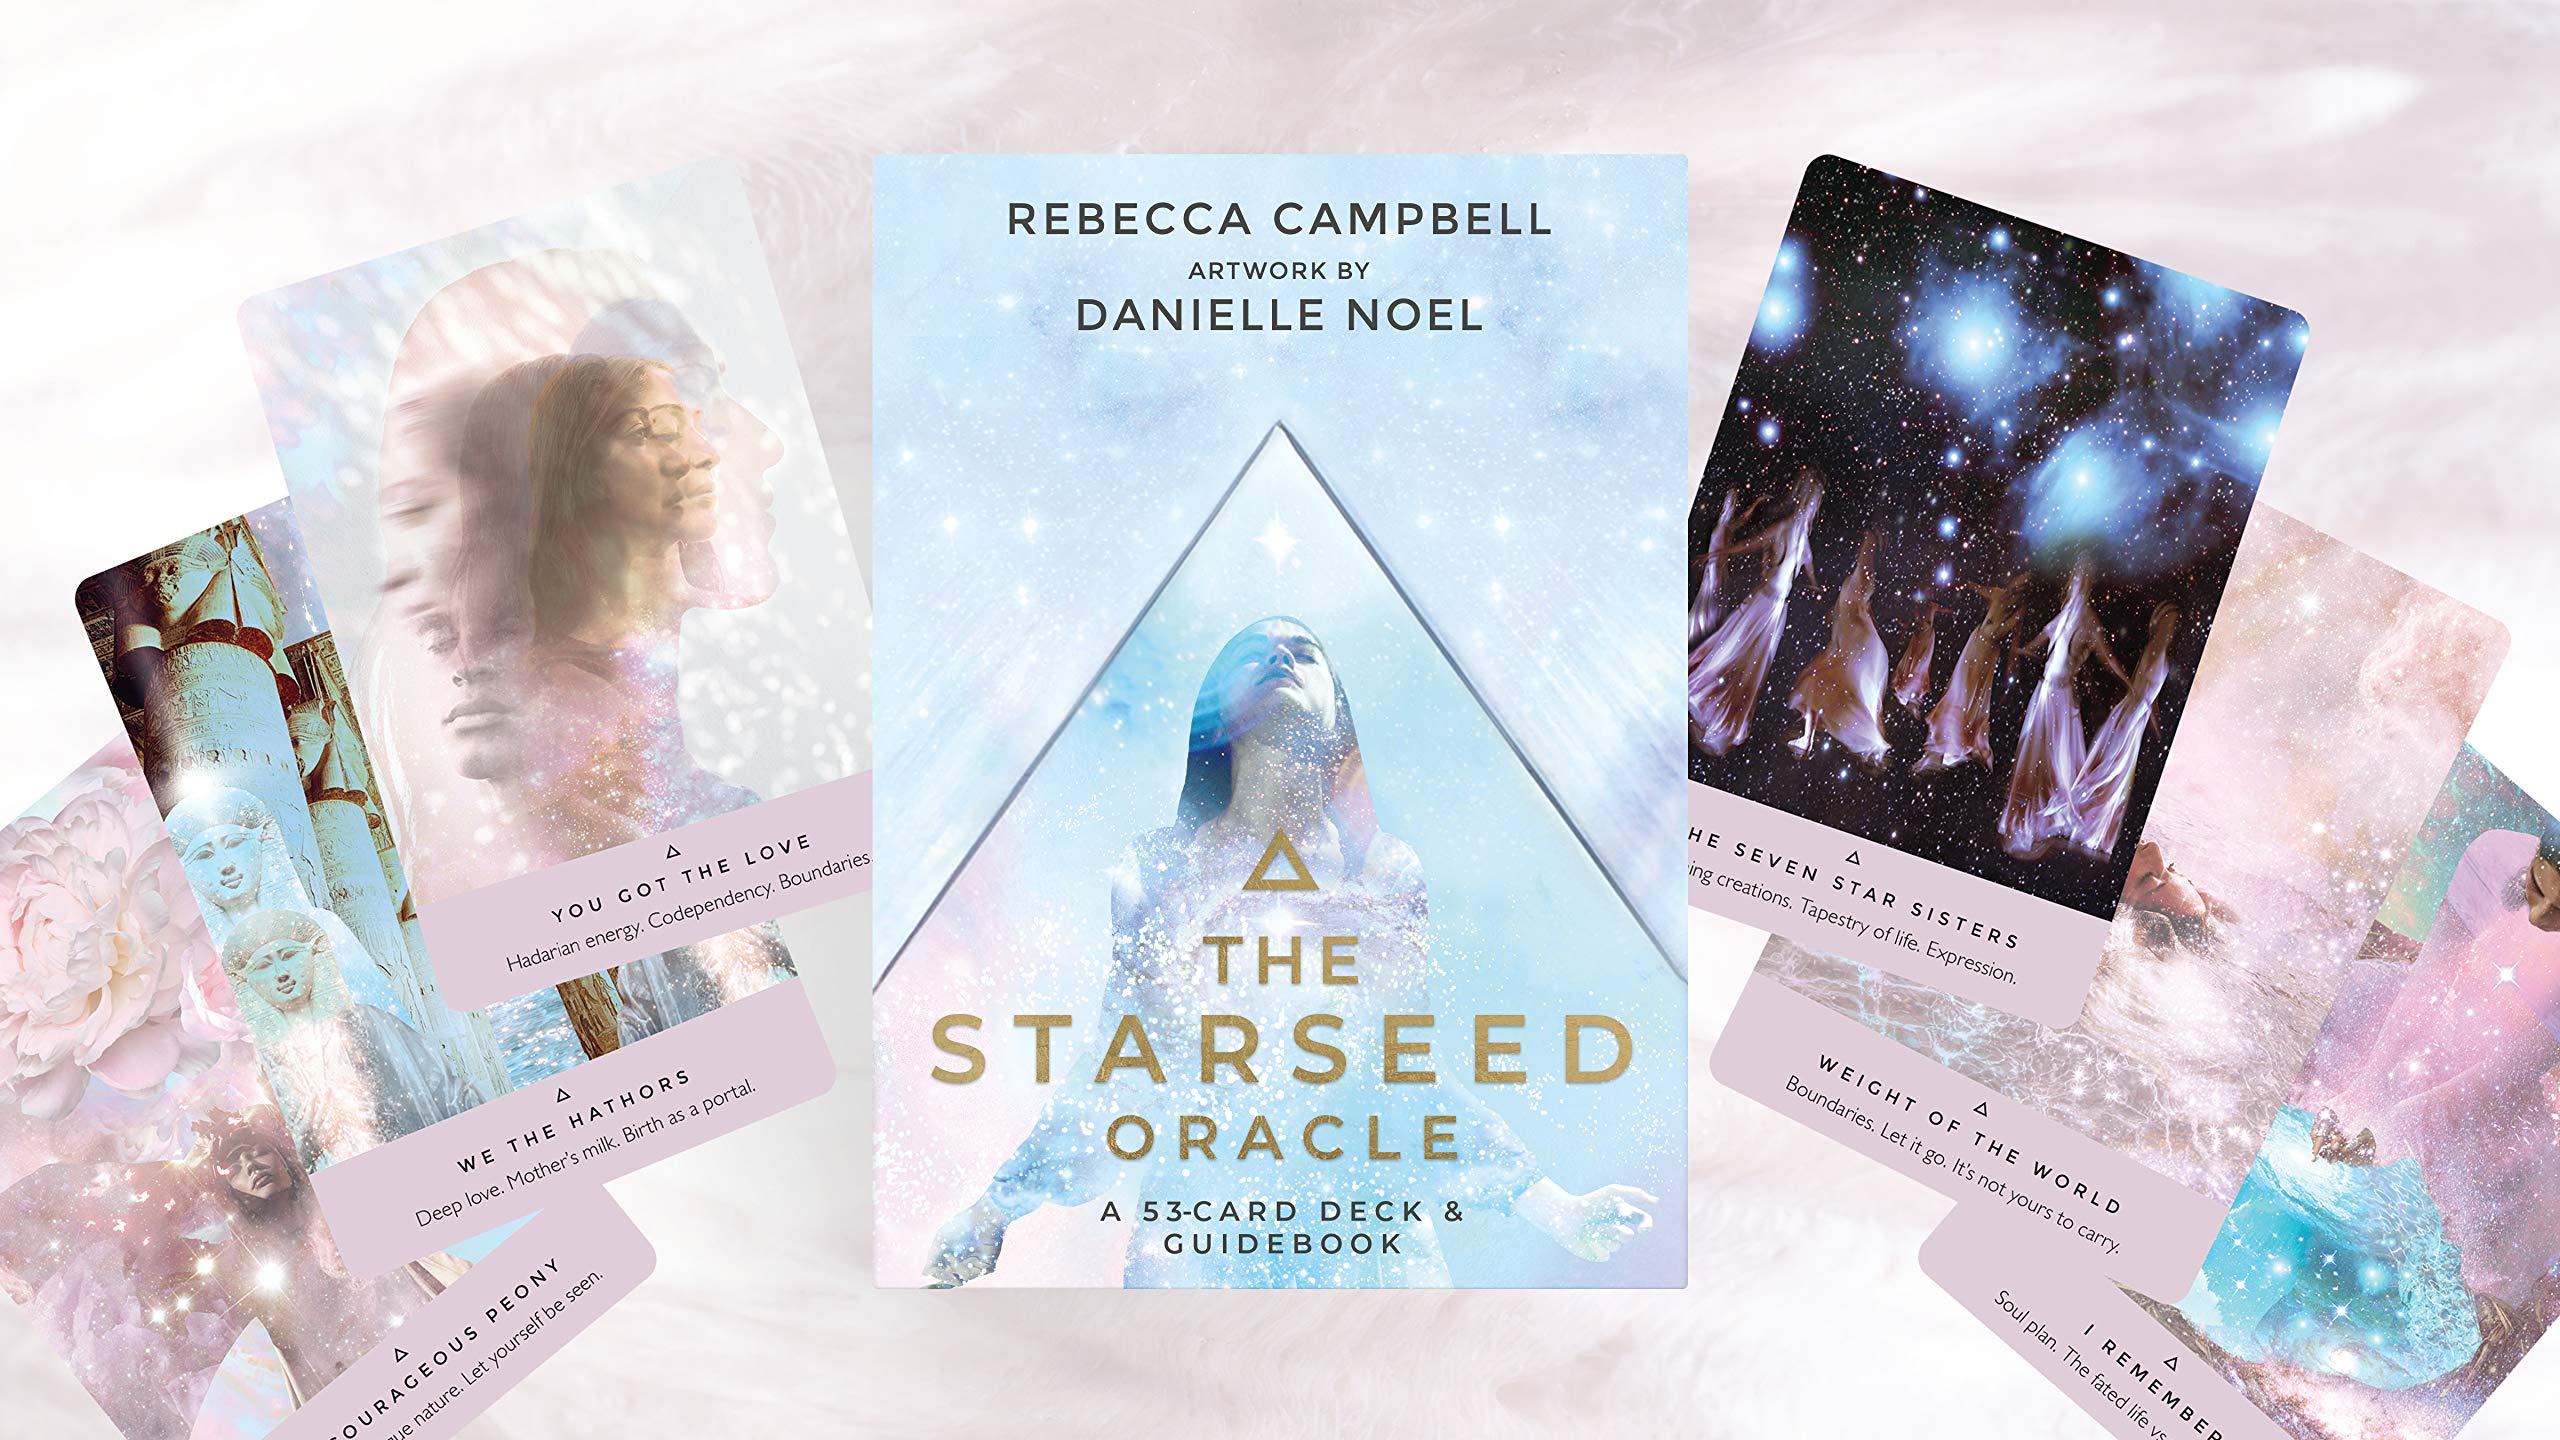 The Starseed Oracle; Rebecca Campbell, artwork by Danielle Noel